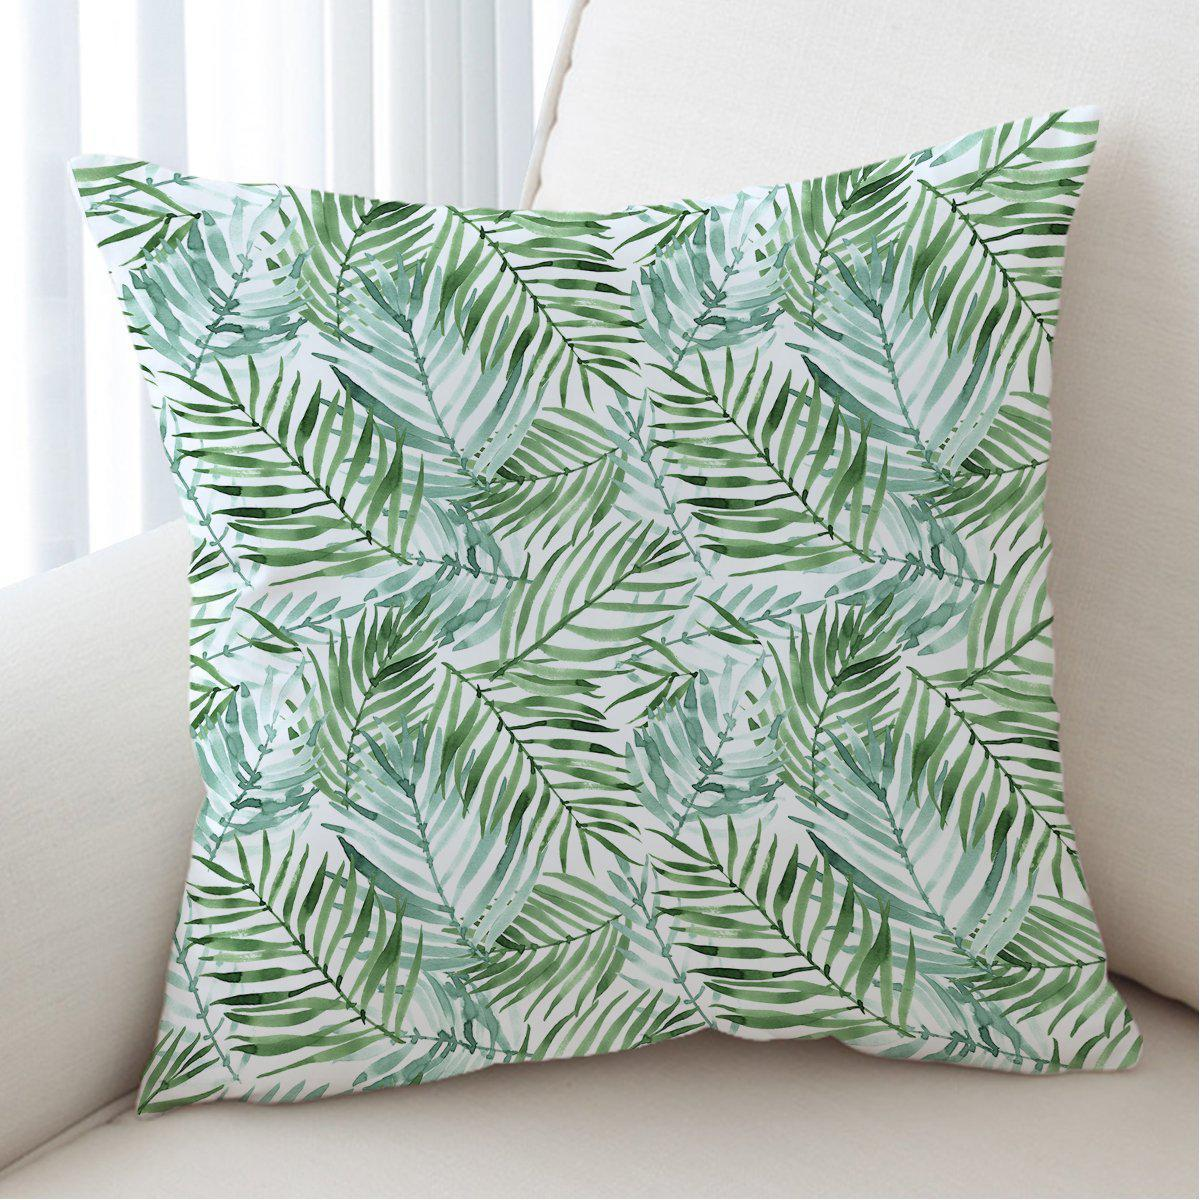 Tropical Palm Leaves Pillow Cover-Coastal Passion